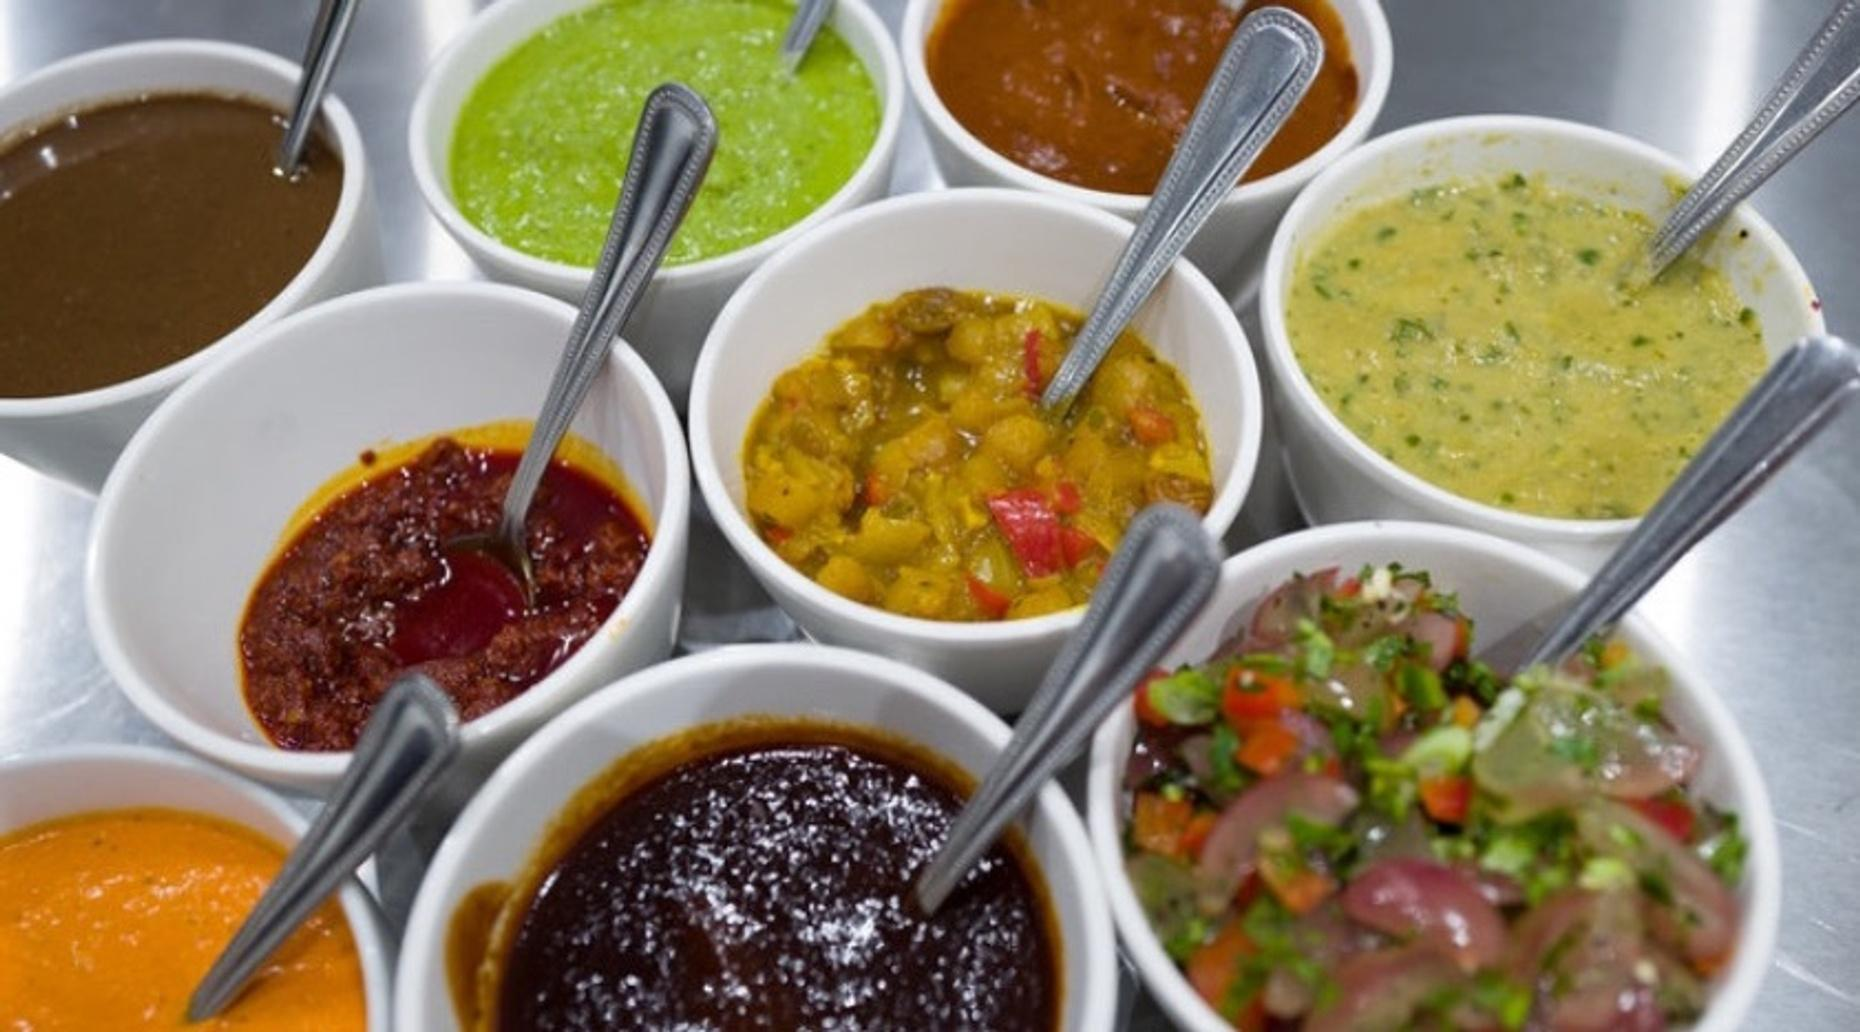 Alternative Sauces Cooking Class in Chicago